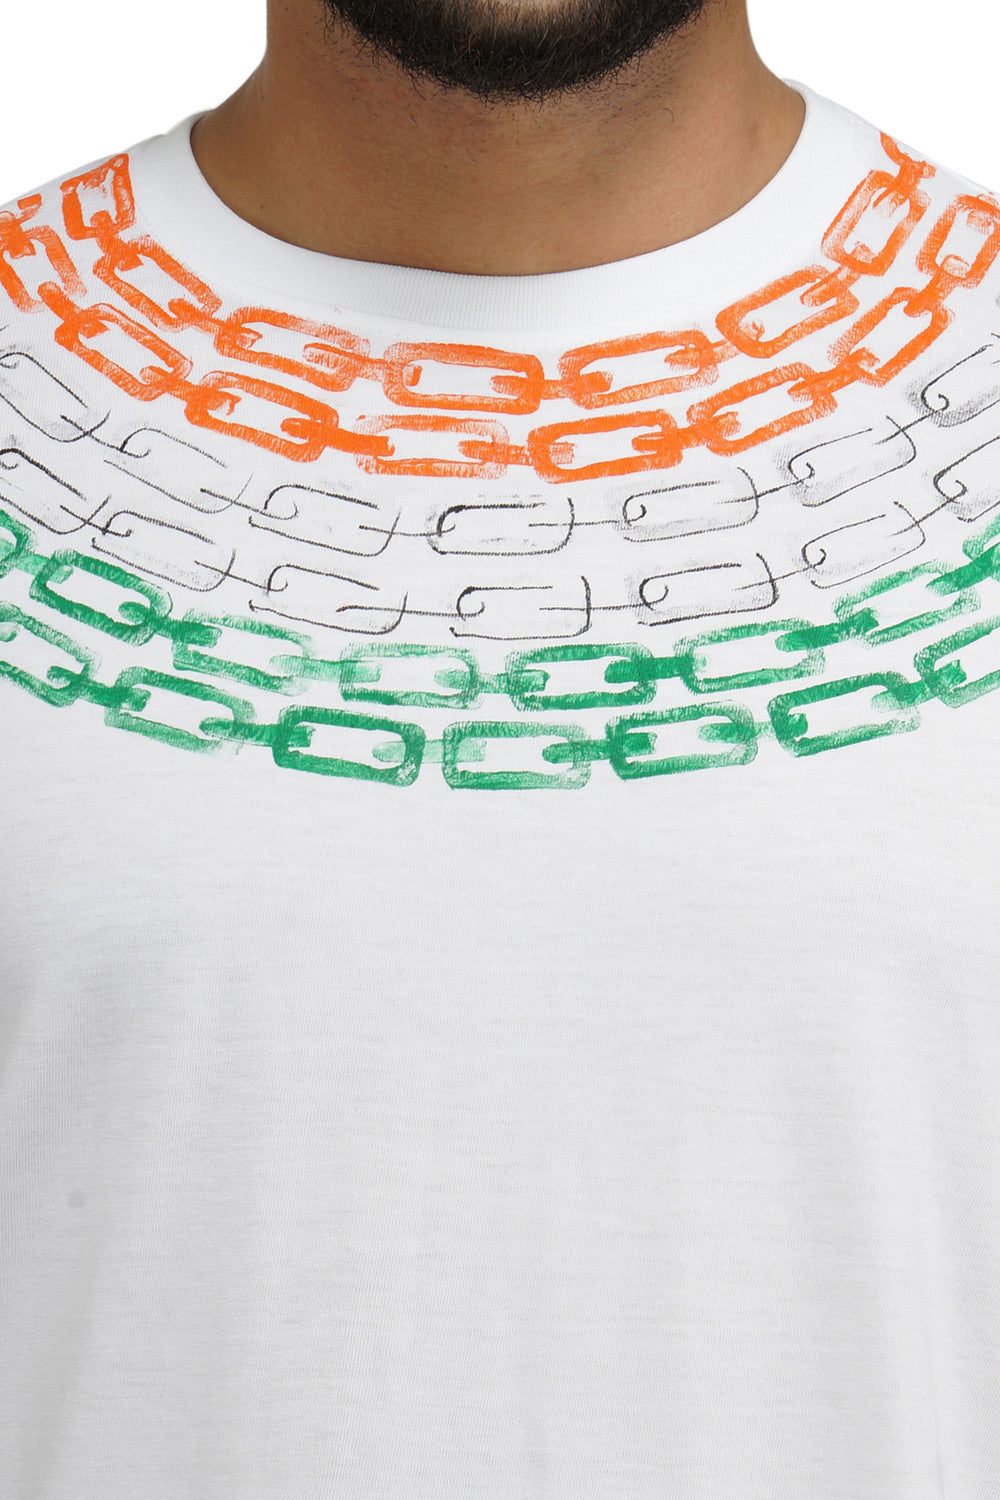 Hand-painted Chain of Freedom White T-shirt - Rang Rage